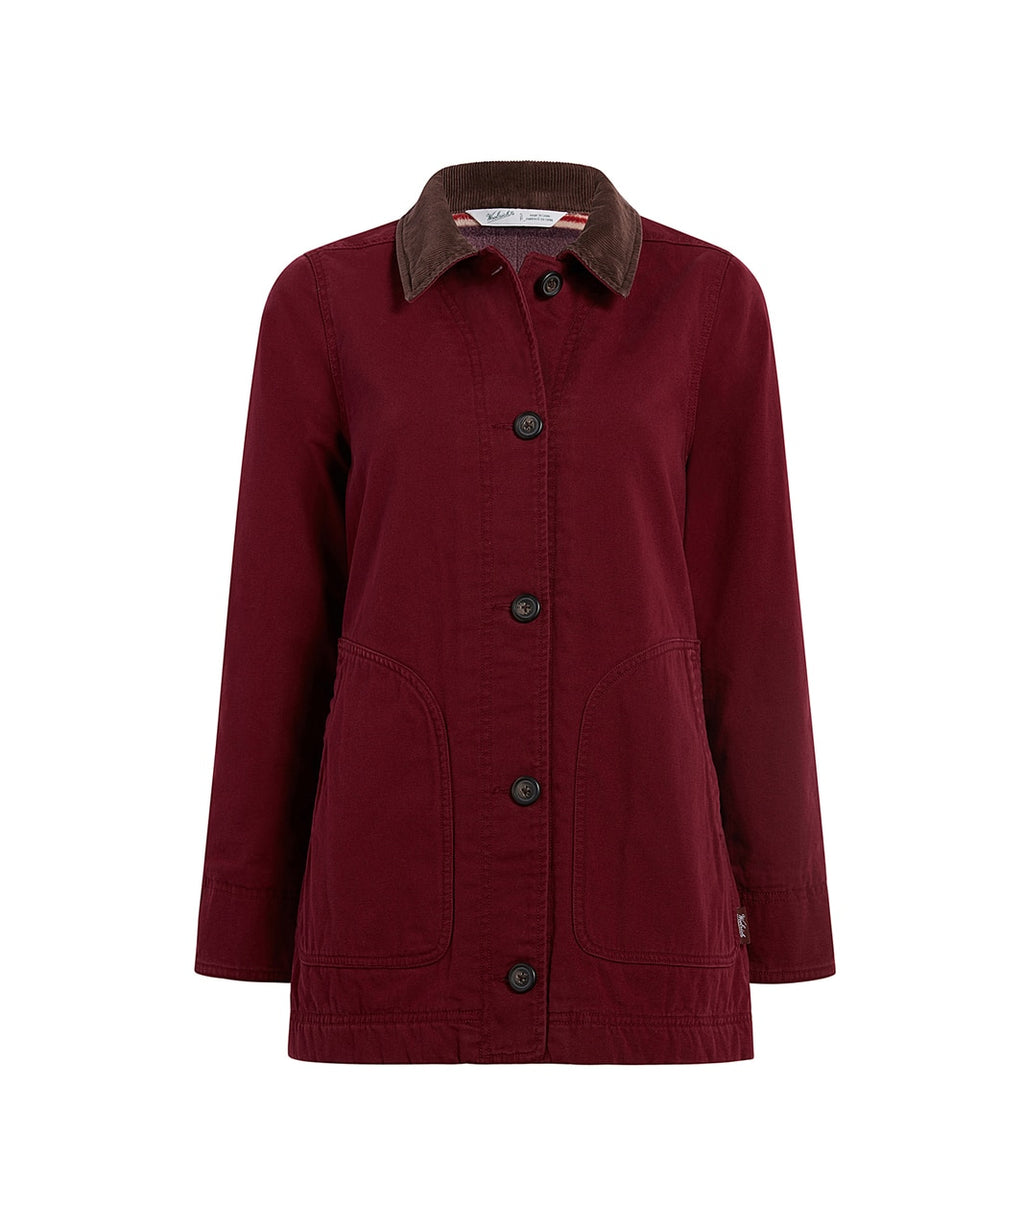 Woolrich - Dorrington Barn Jacket - Tamarind - Gals